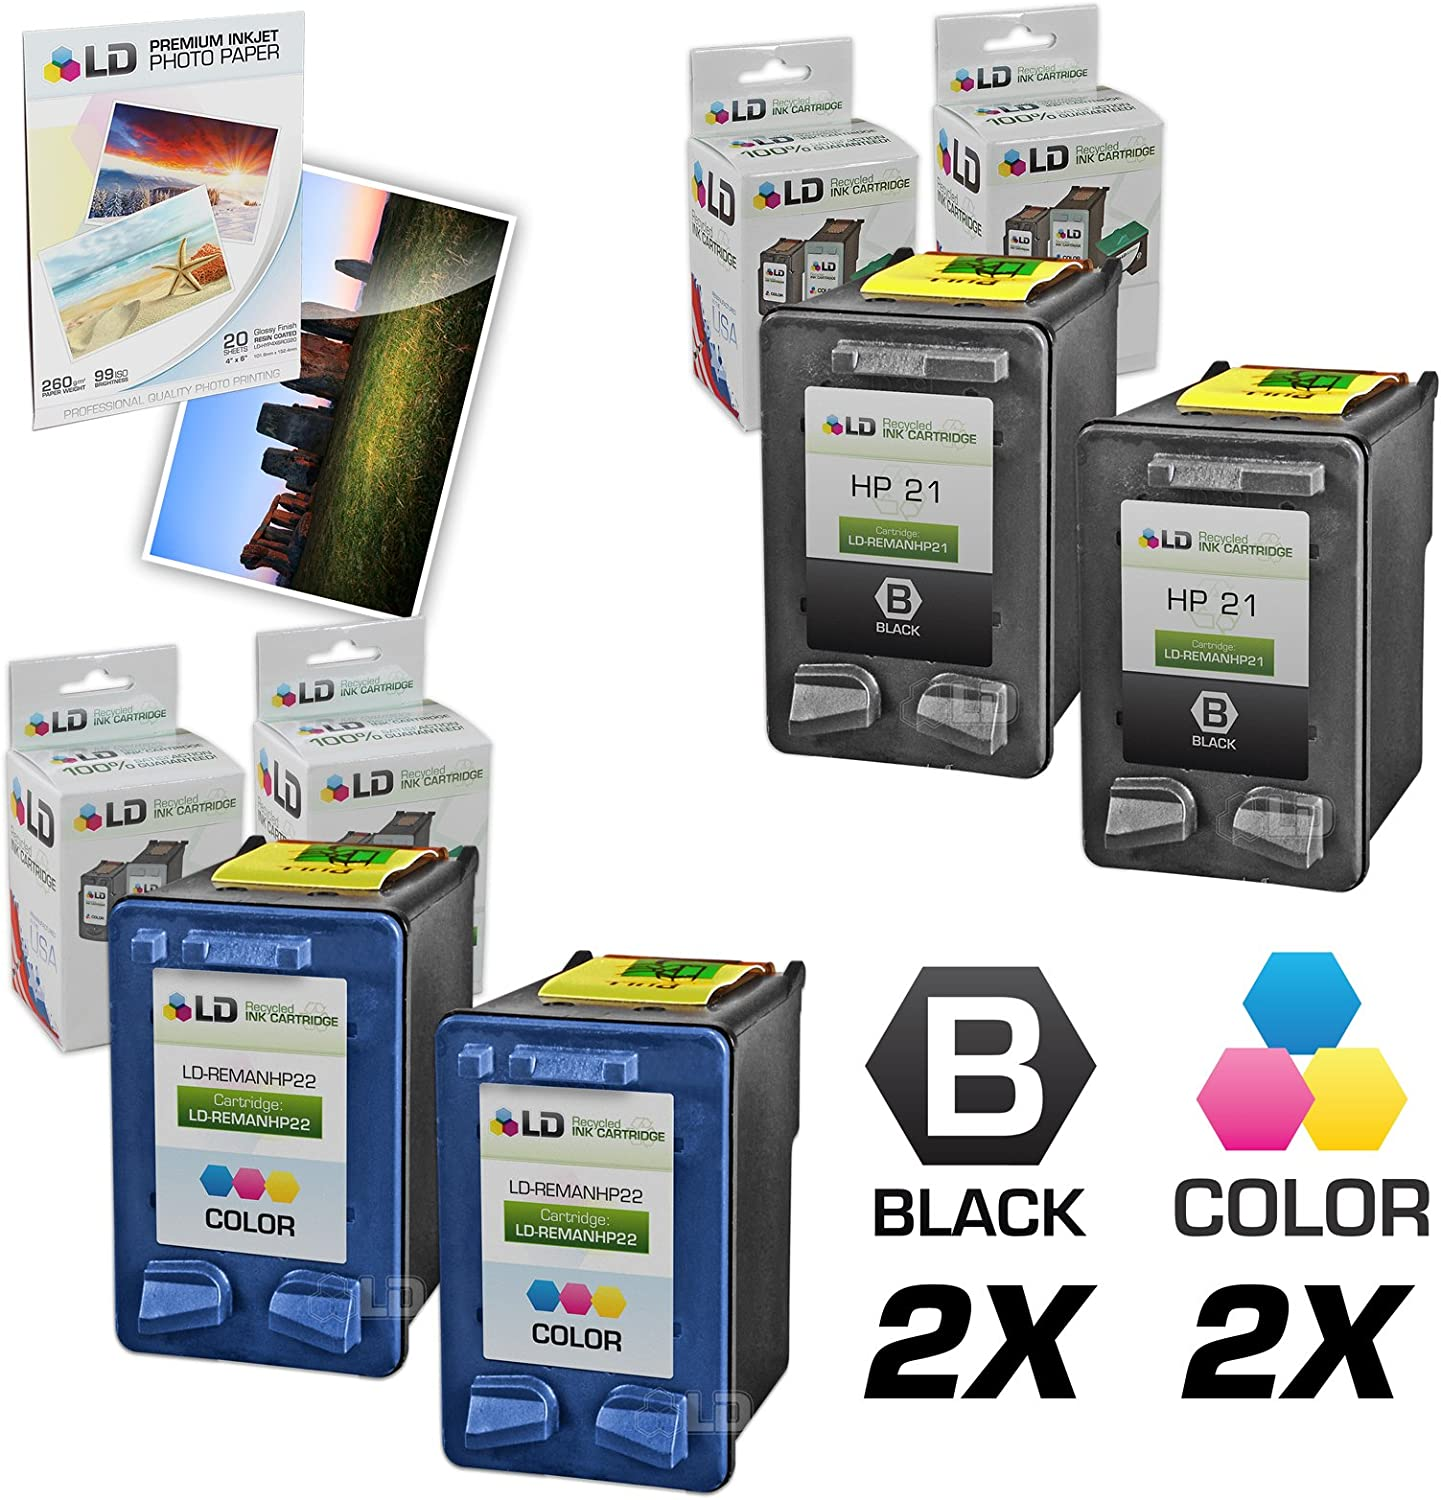 LD Remanufactured Ink Cartridge Replacement for HP 21 & 22 (2 Black, 2 Color, 4-Pack)